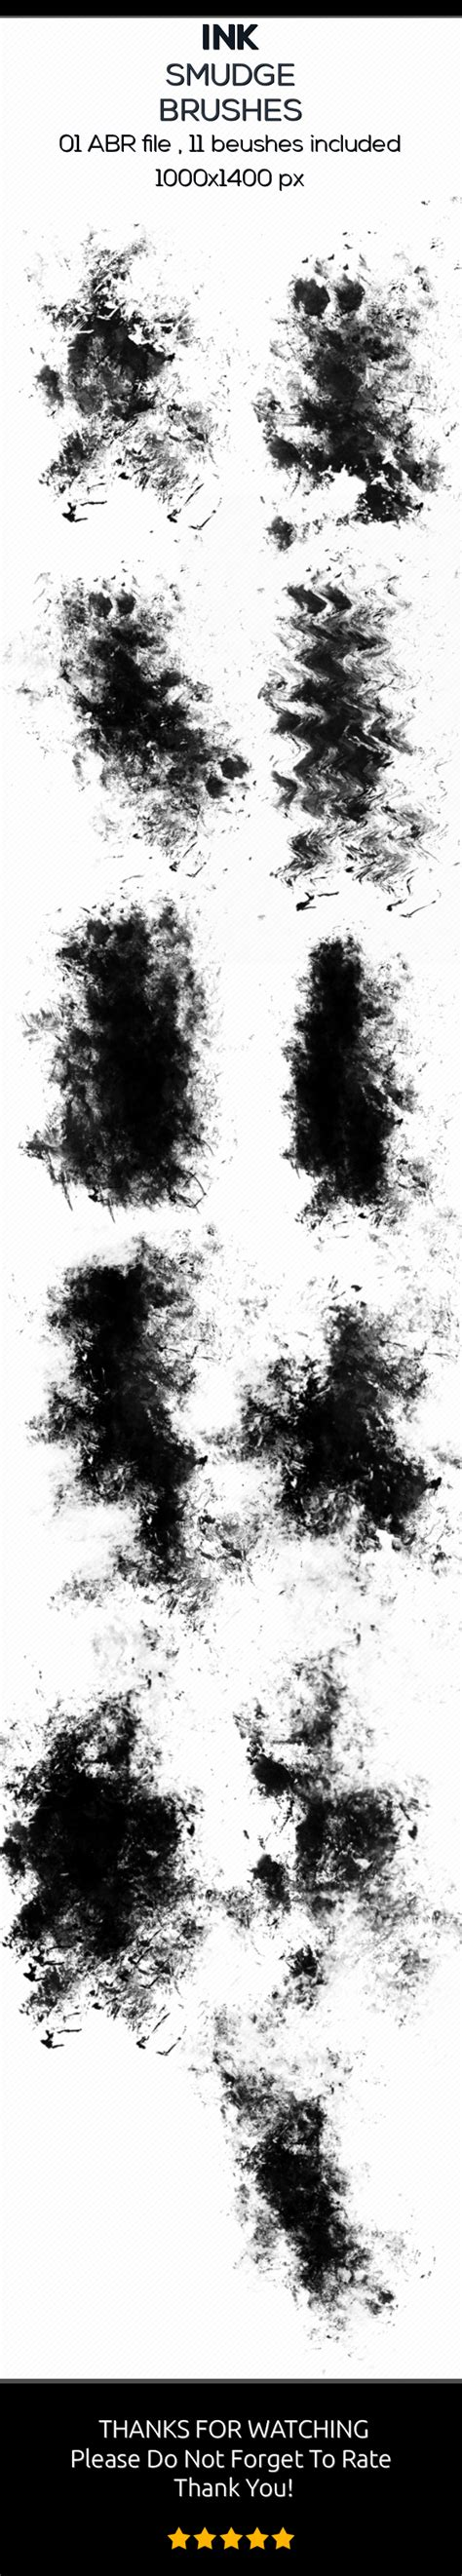 tattoo ink smudge ink smudge brushes by big art graphicriver